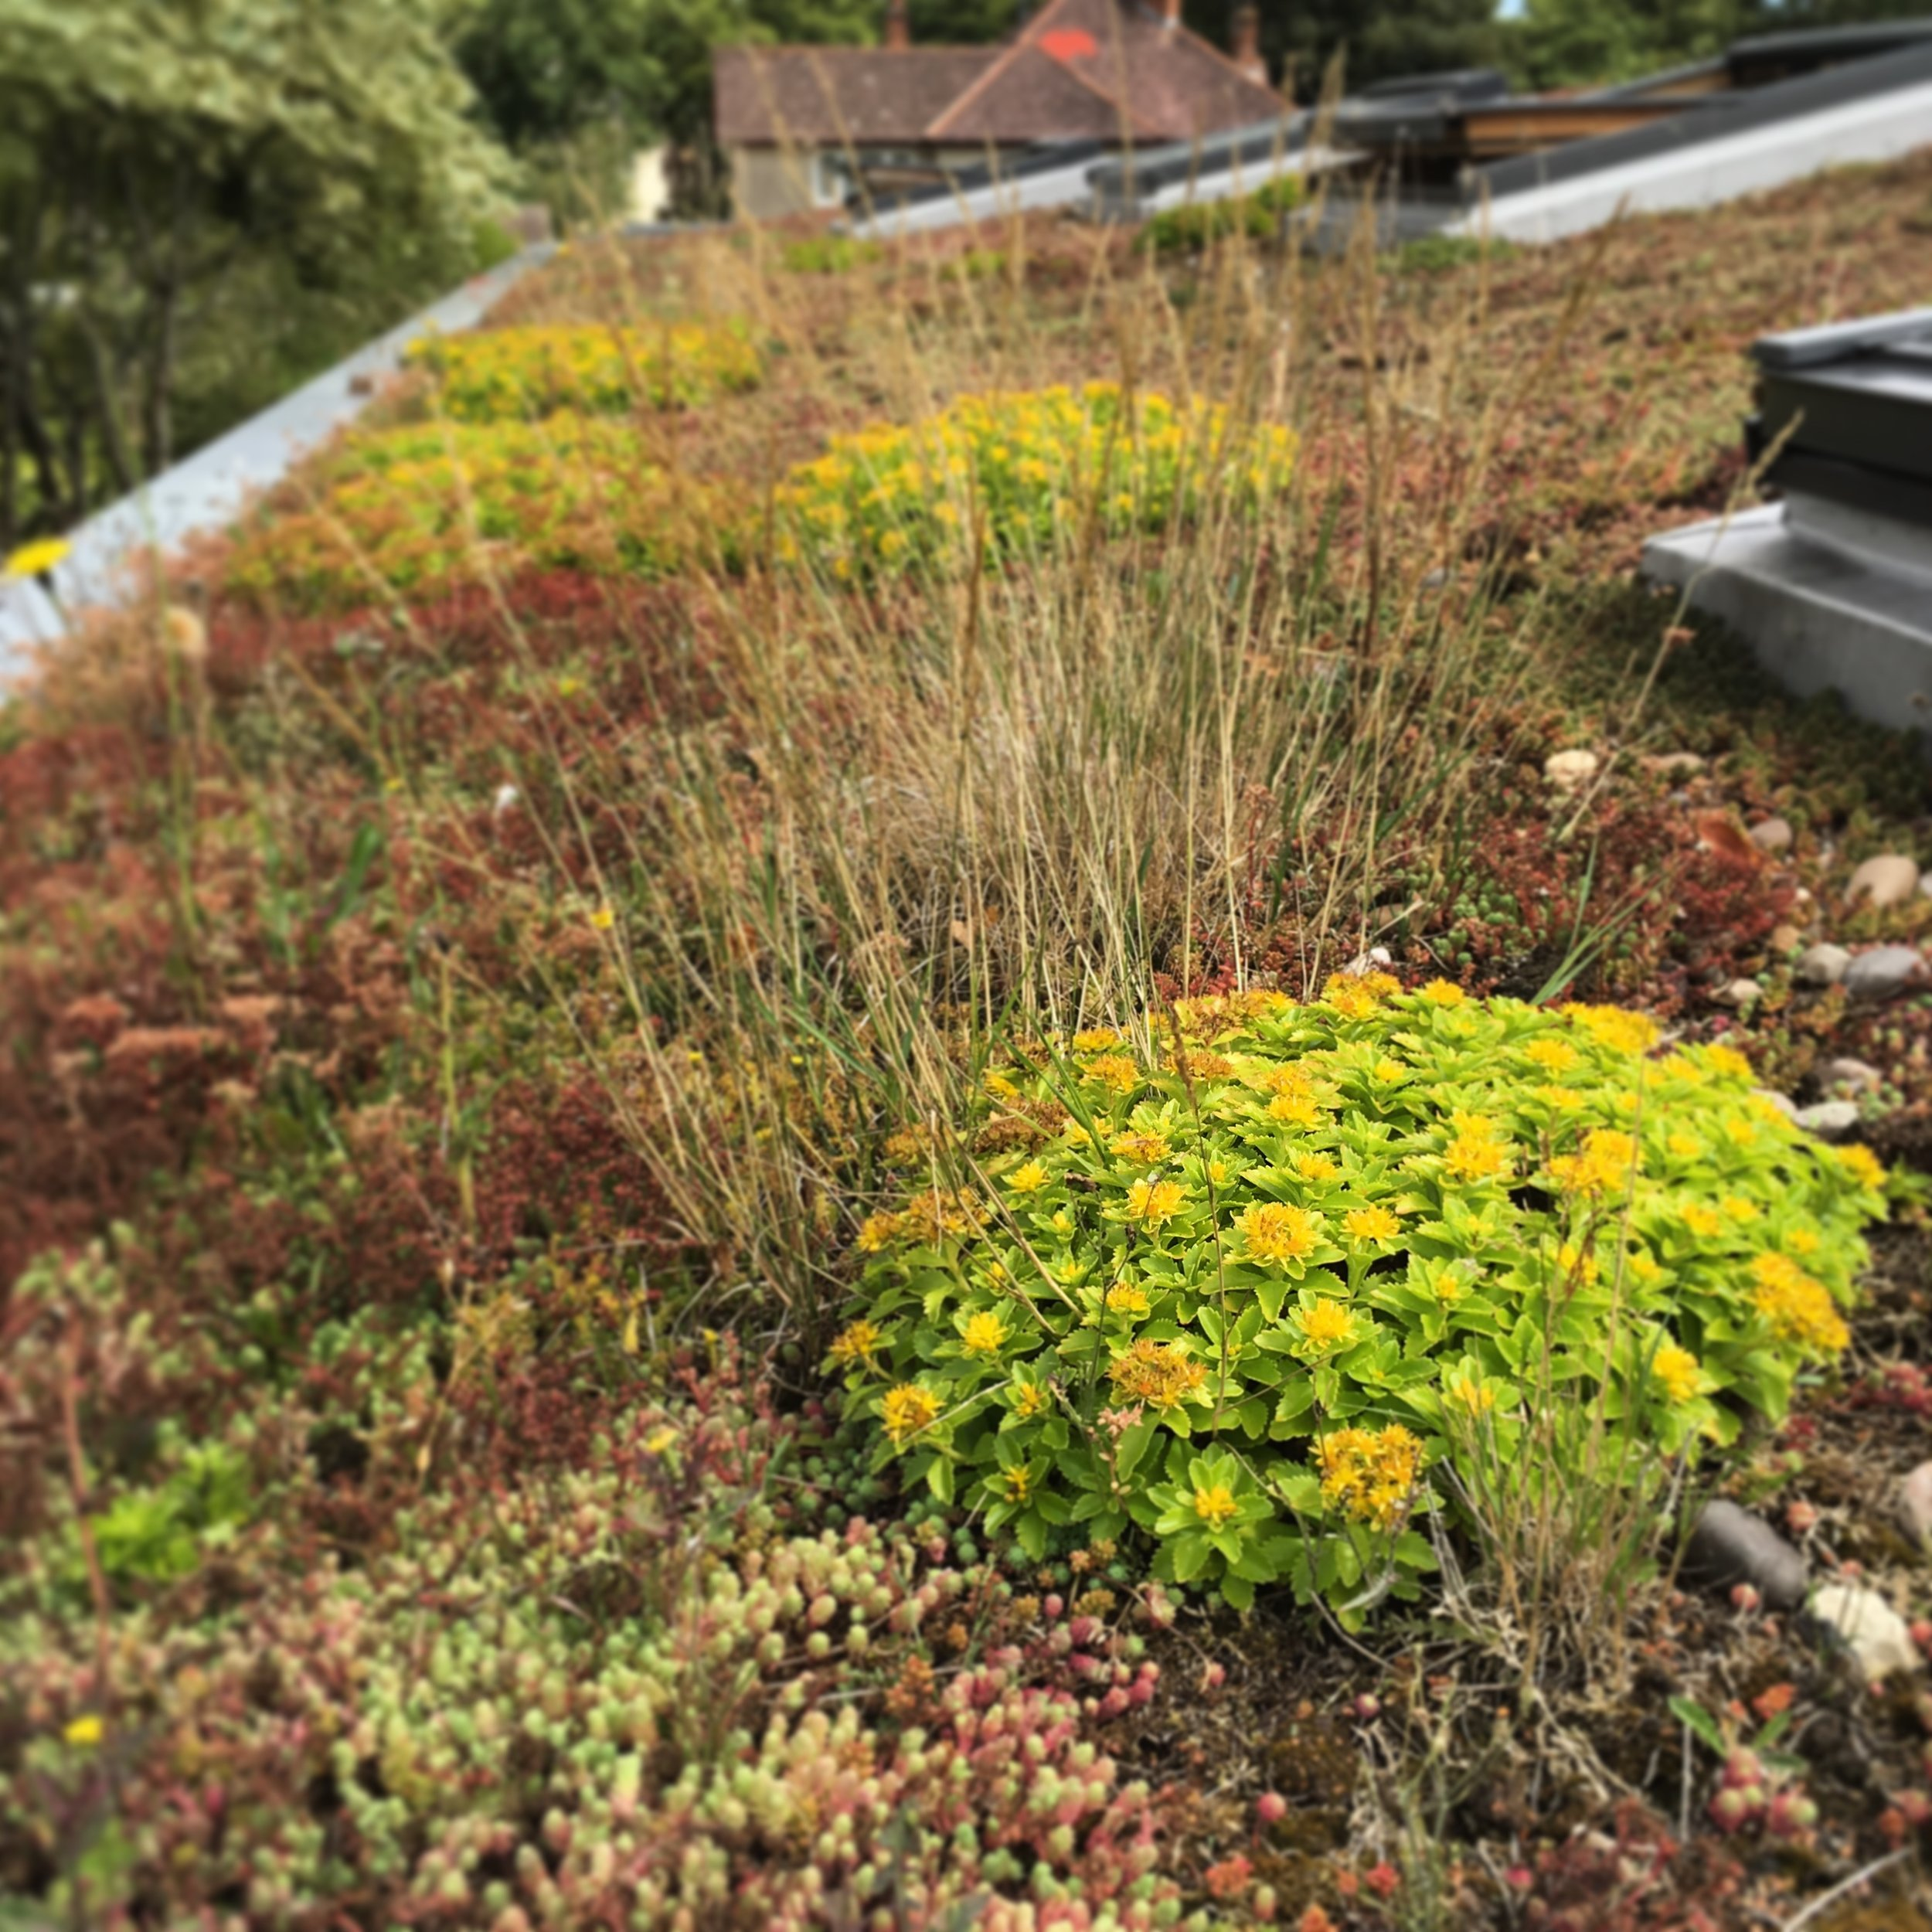 Sedums (drought tolerant succulents) and grasses provide a wildlife haven for insects, bees and invertebrates! Beats an old tiled roof any day!